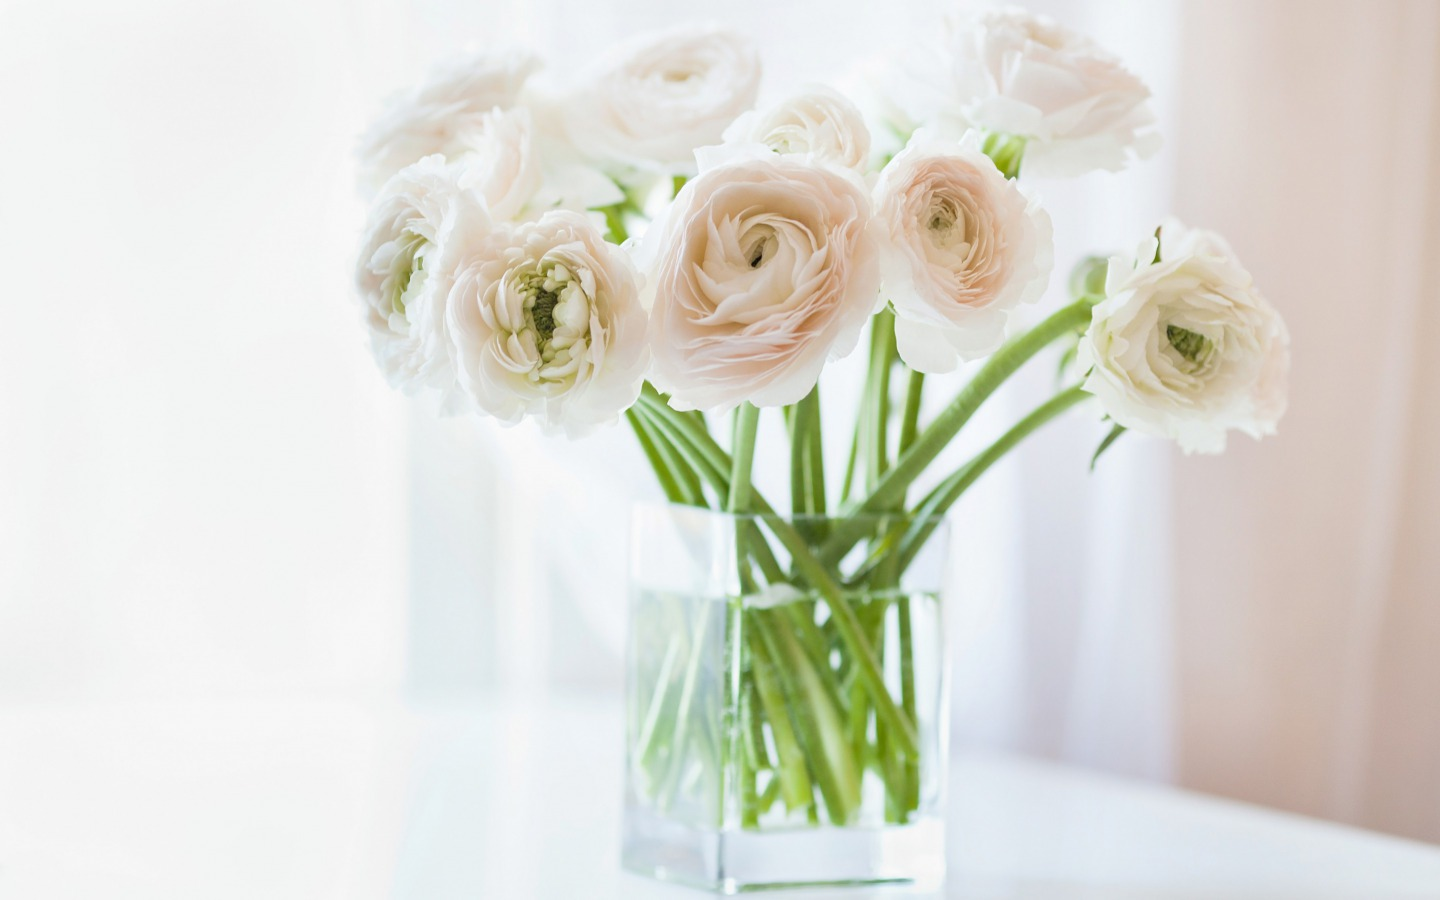 White Flowers Images 19 HD Wallpapers